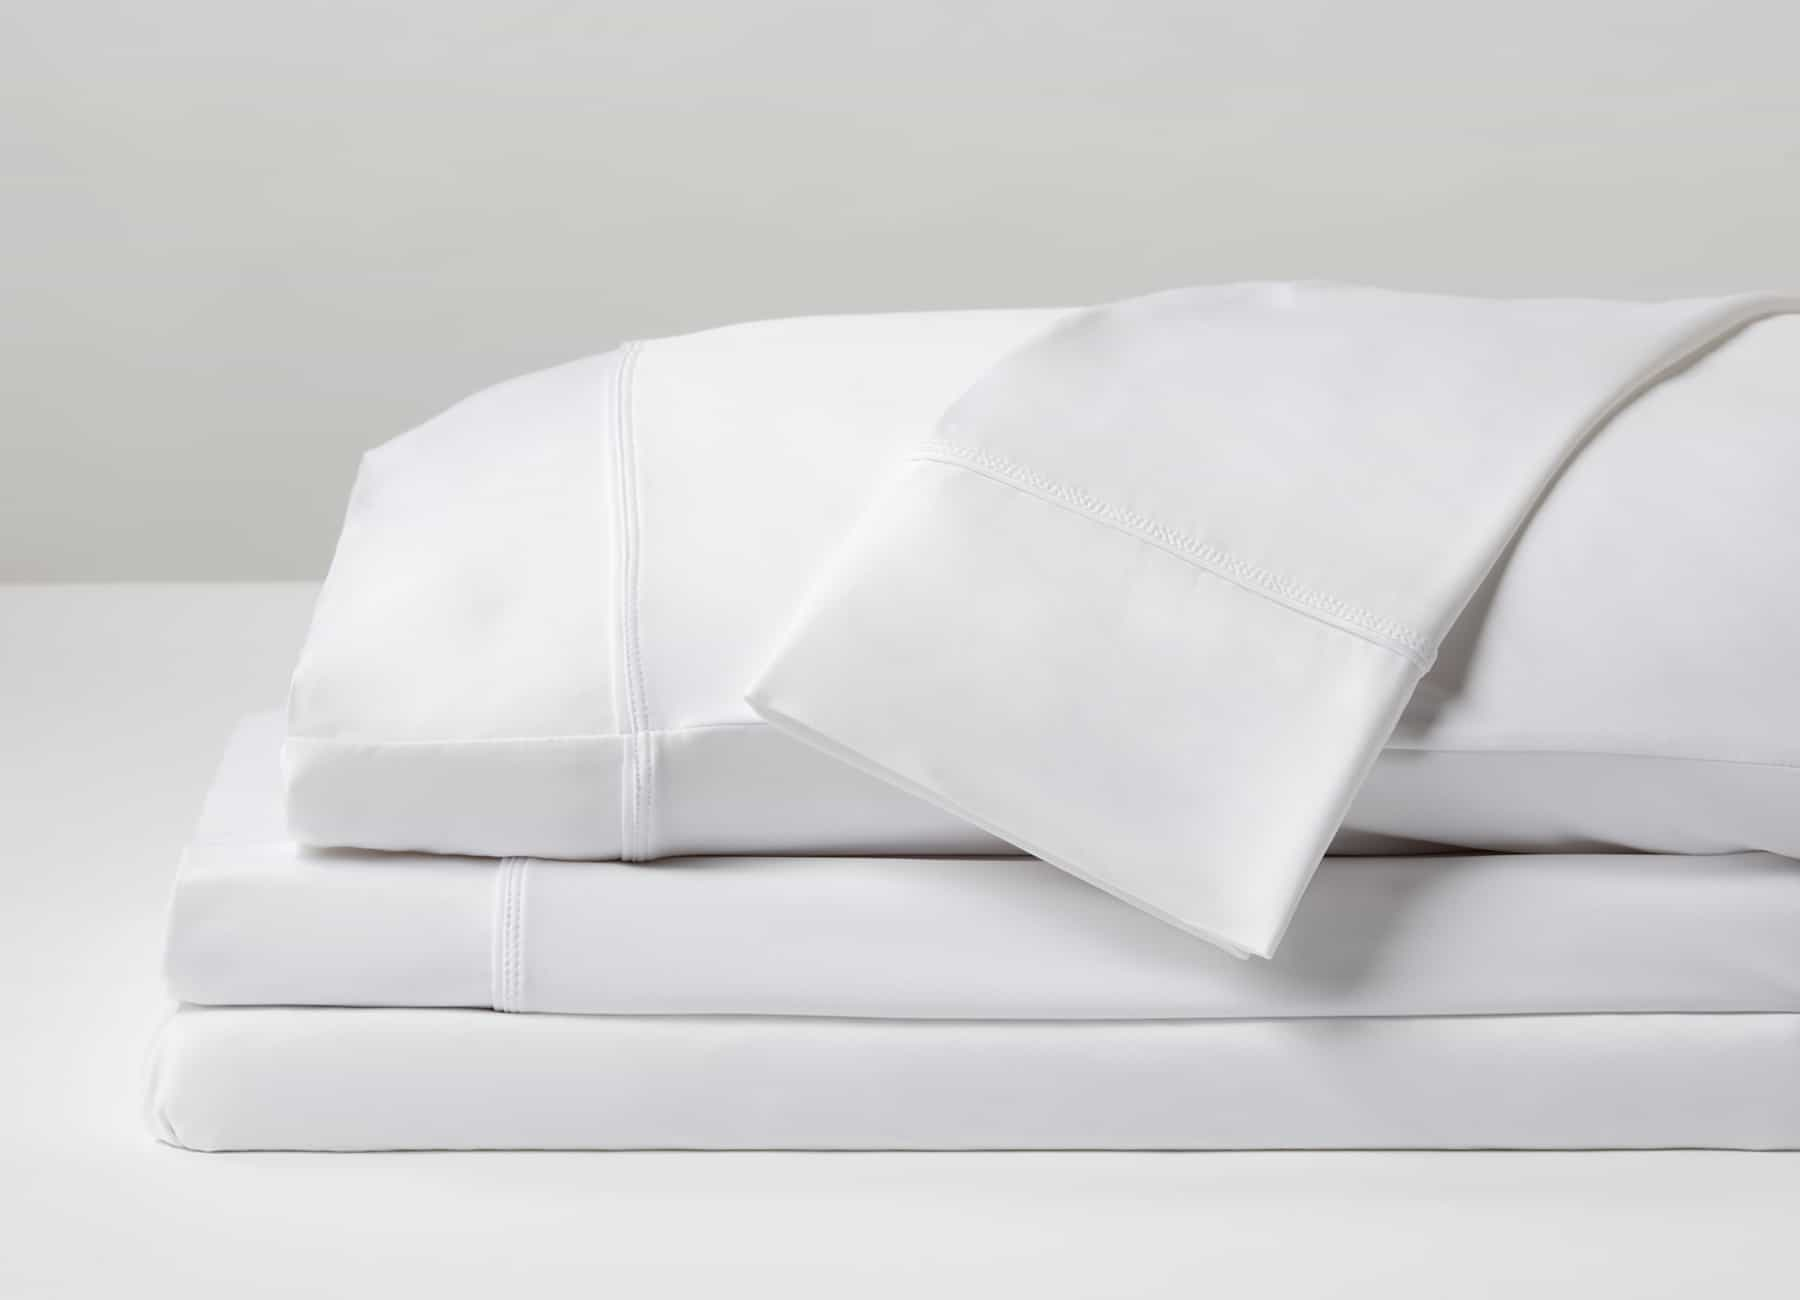 Original Performance Sheet Set Image Shown Folded and Stacked in Bright White #choose-your-color_bright-white